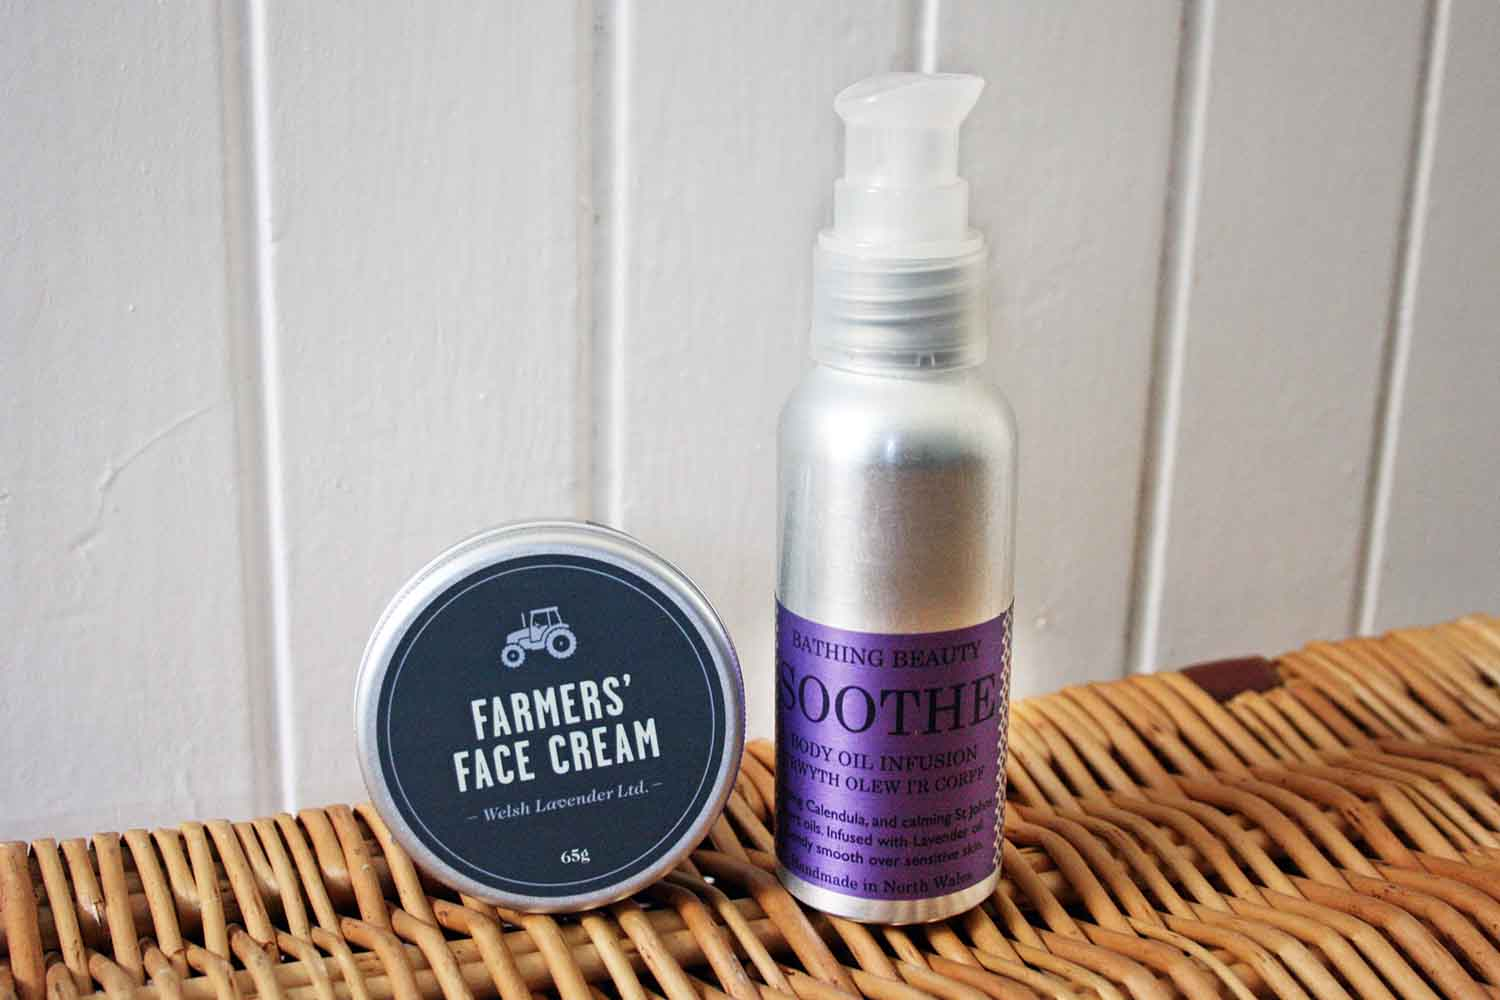 Welsh Lavender Farmers' Face Cream & Bathing Beauty's Soothe Natural Body Oil